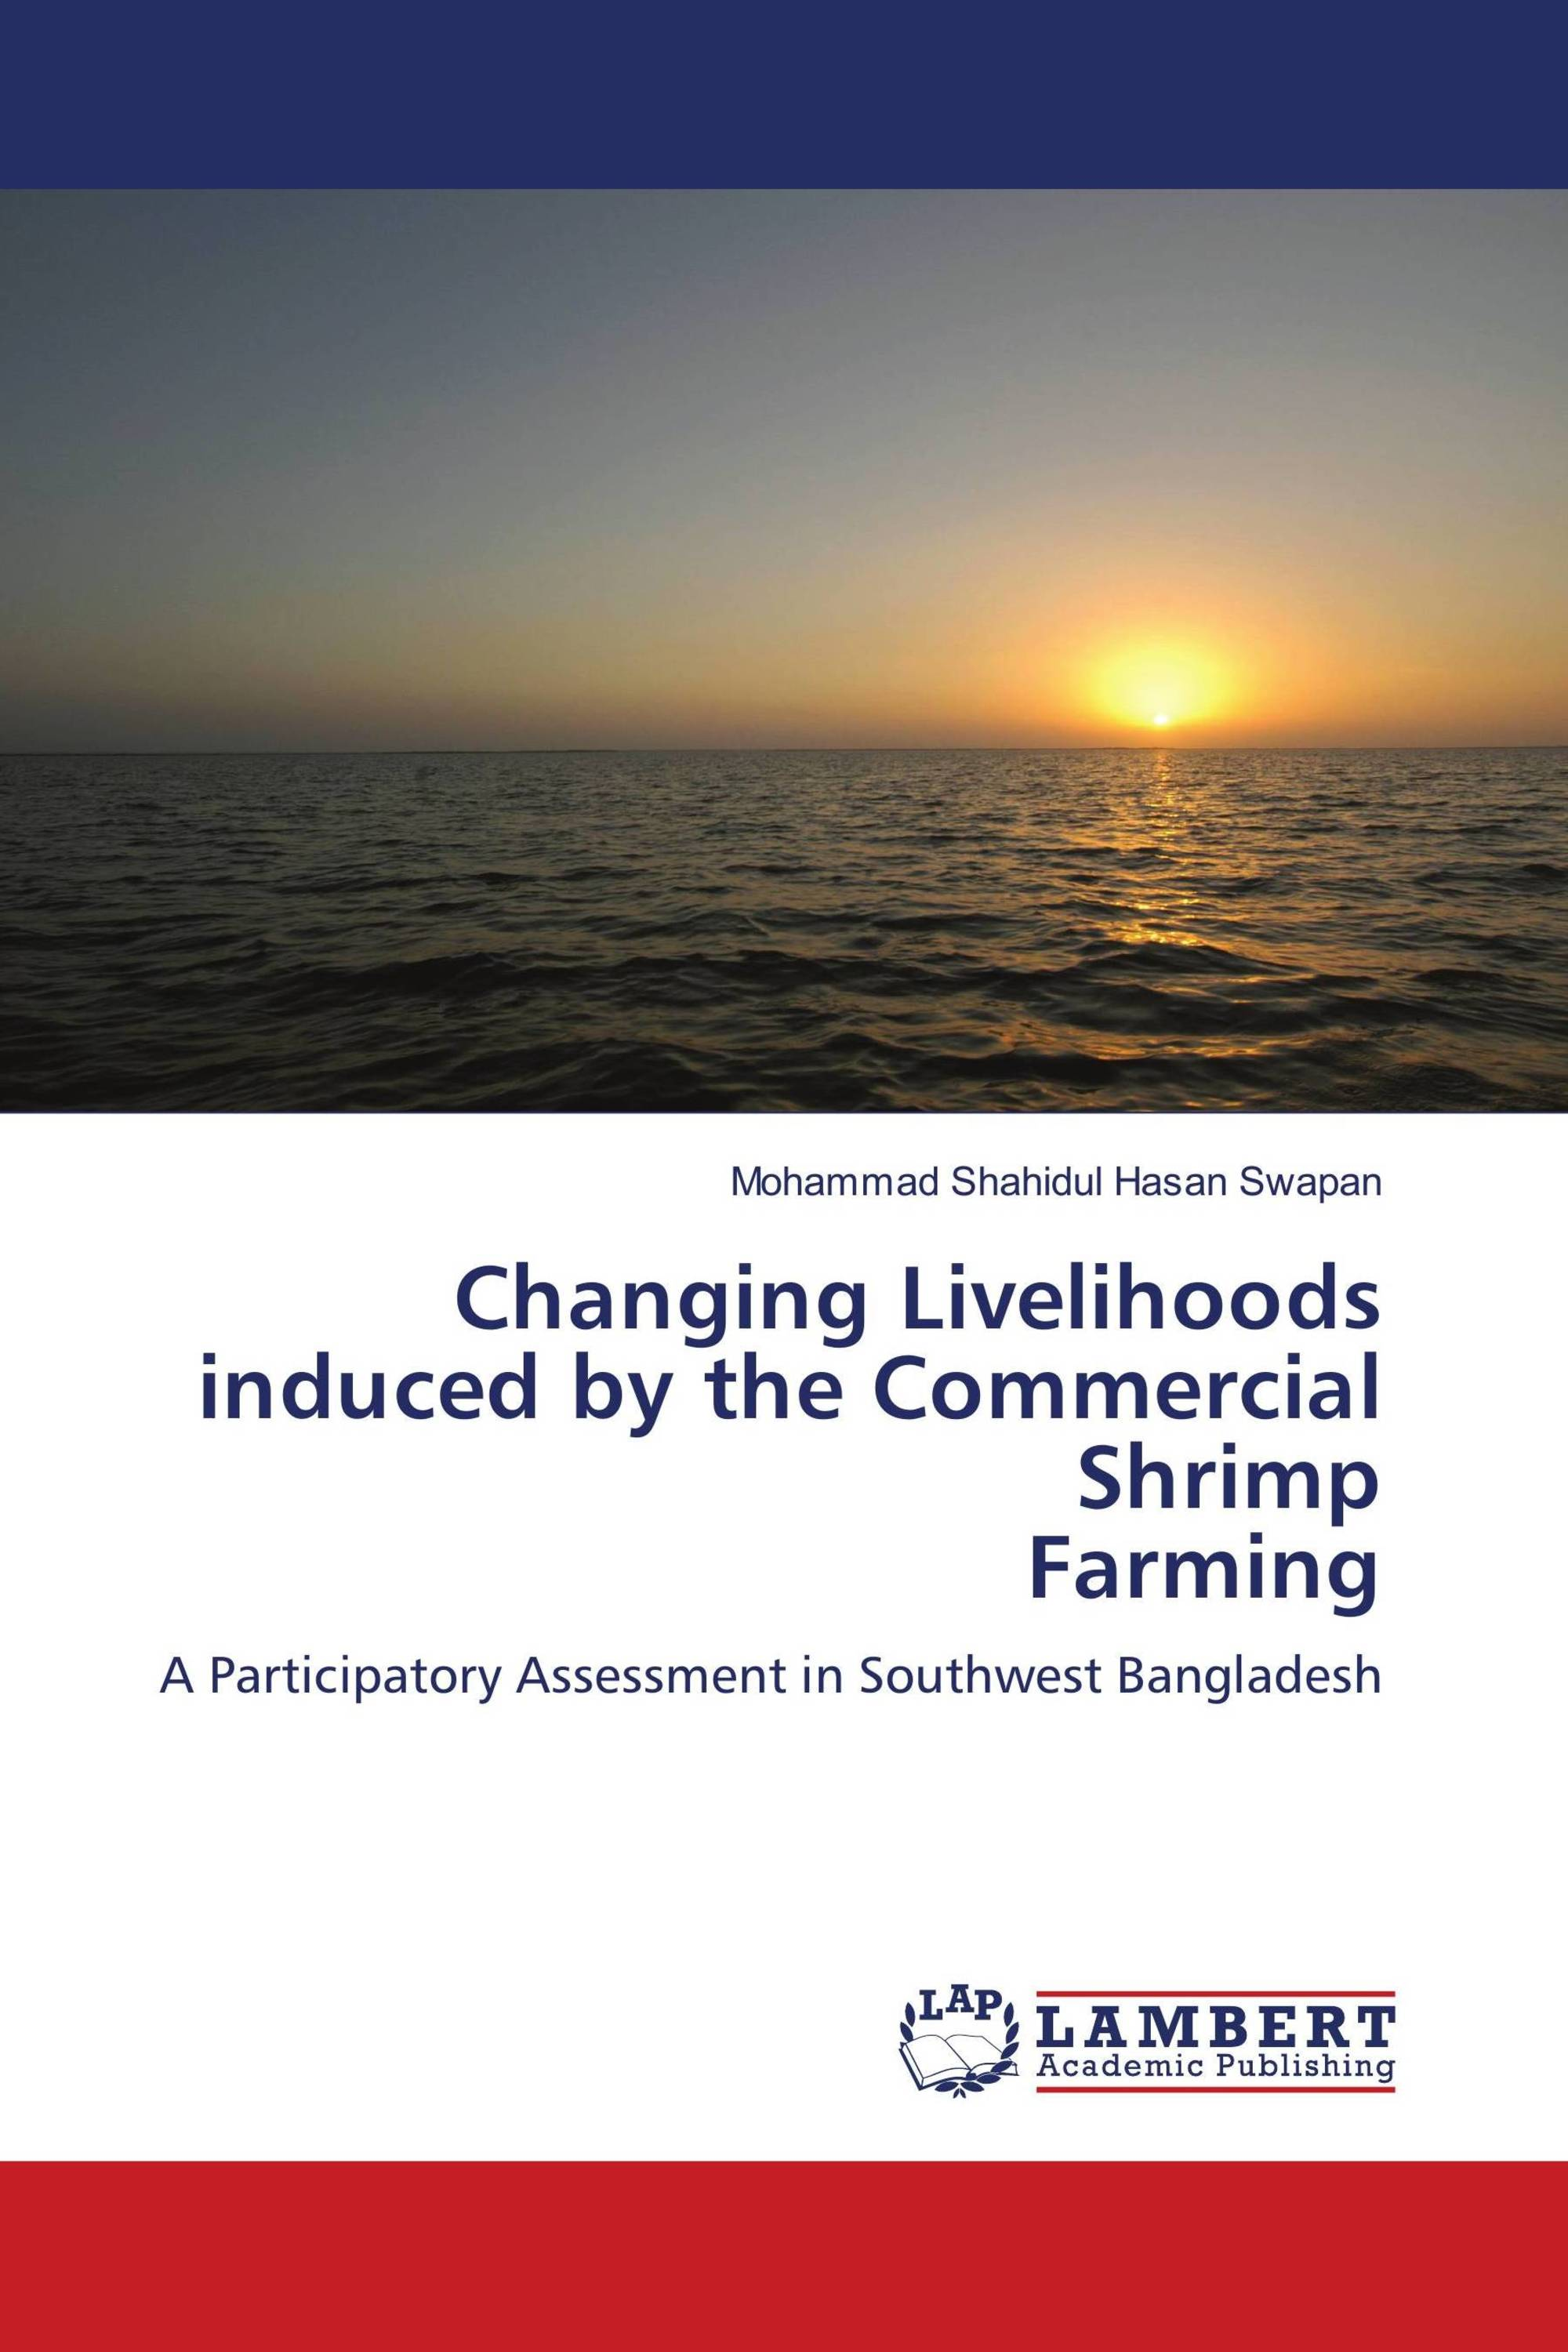 Changing Livelihoods induced by the Commercial Shrimp Farming